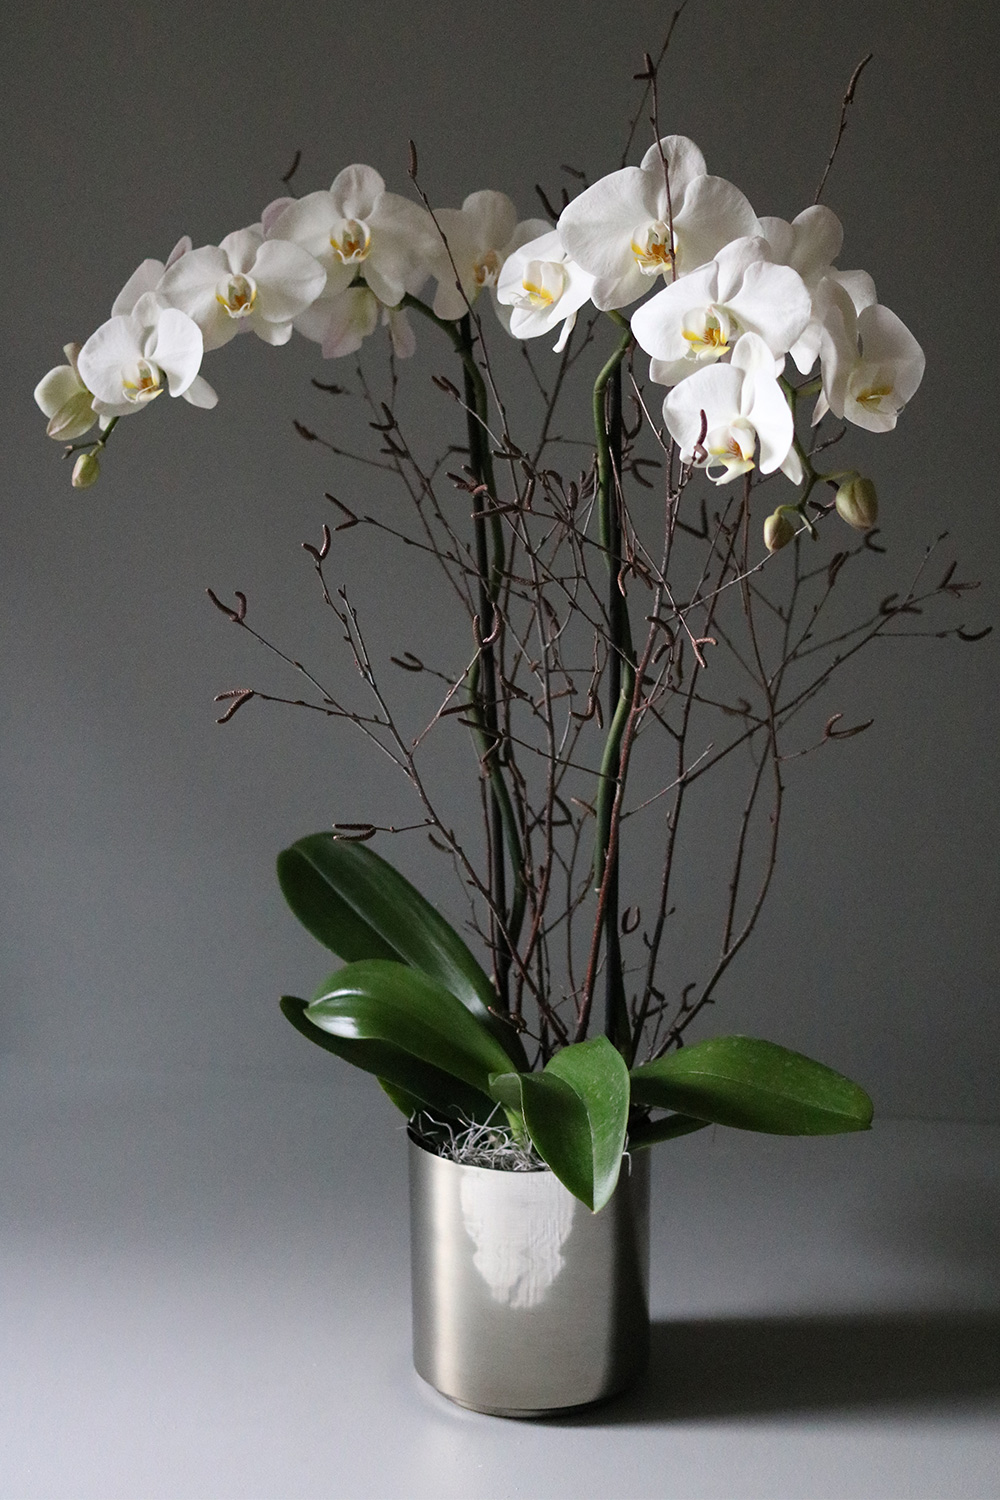 Agent F & POTTED WHITE PHALAENOPSIS ORCHID